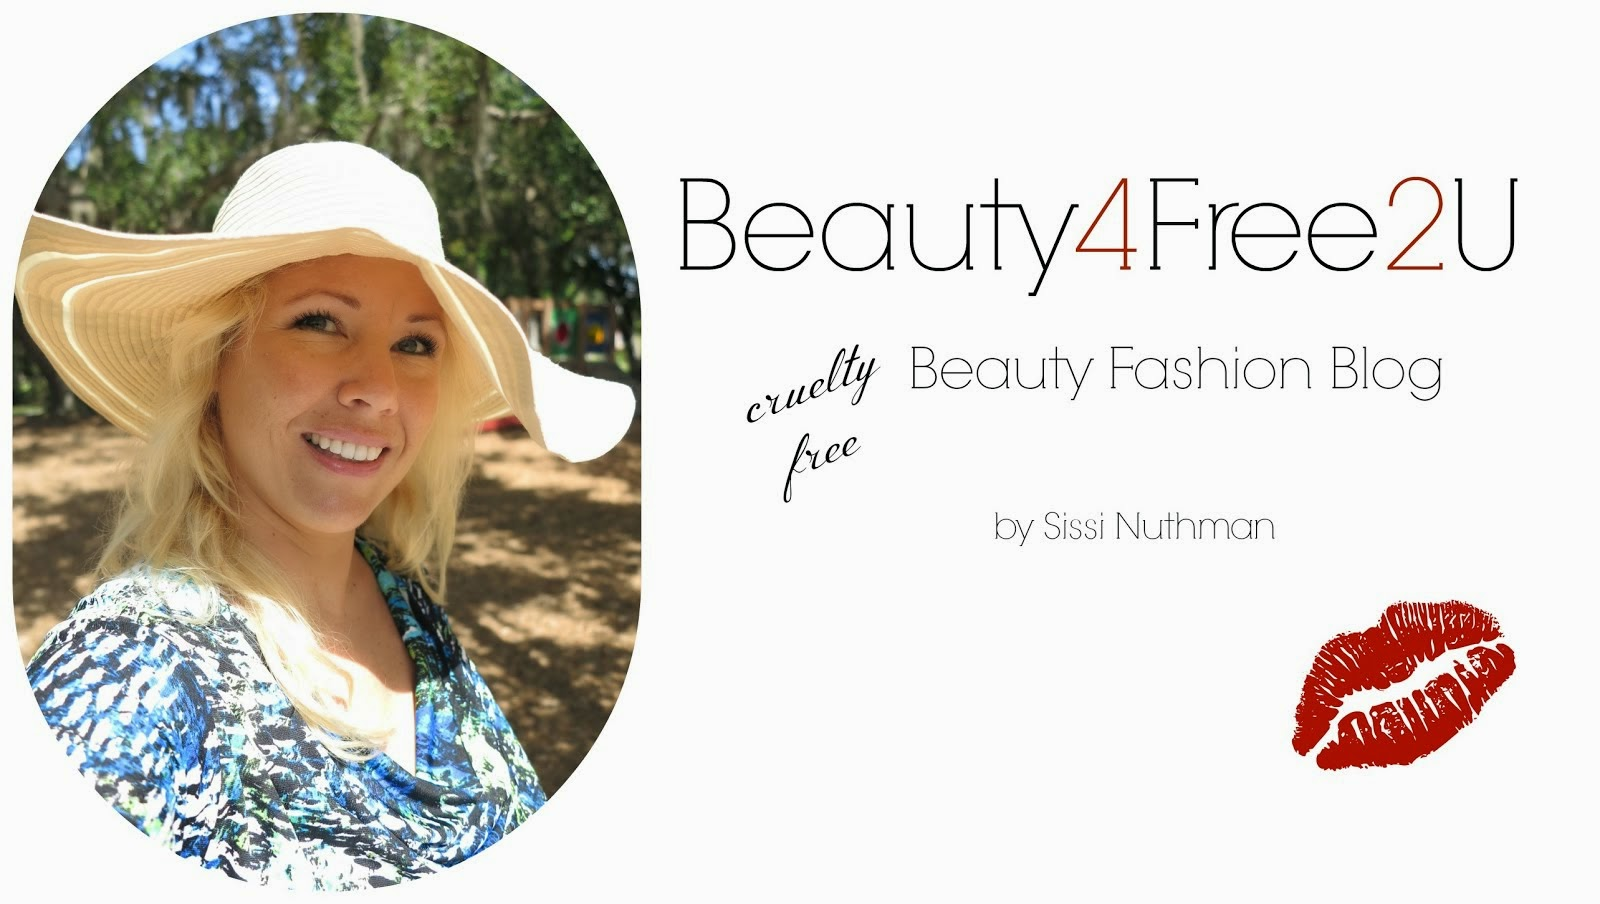 Welcome on Beauty4Free2U